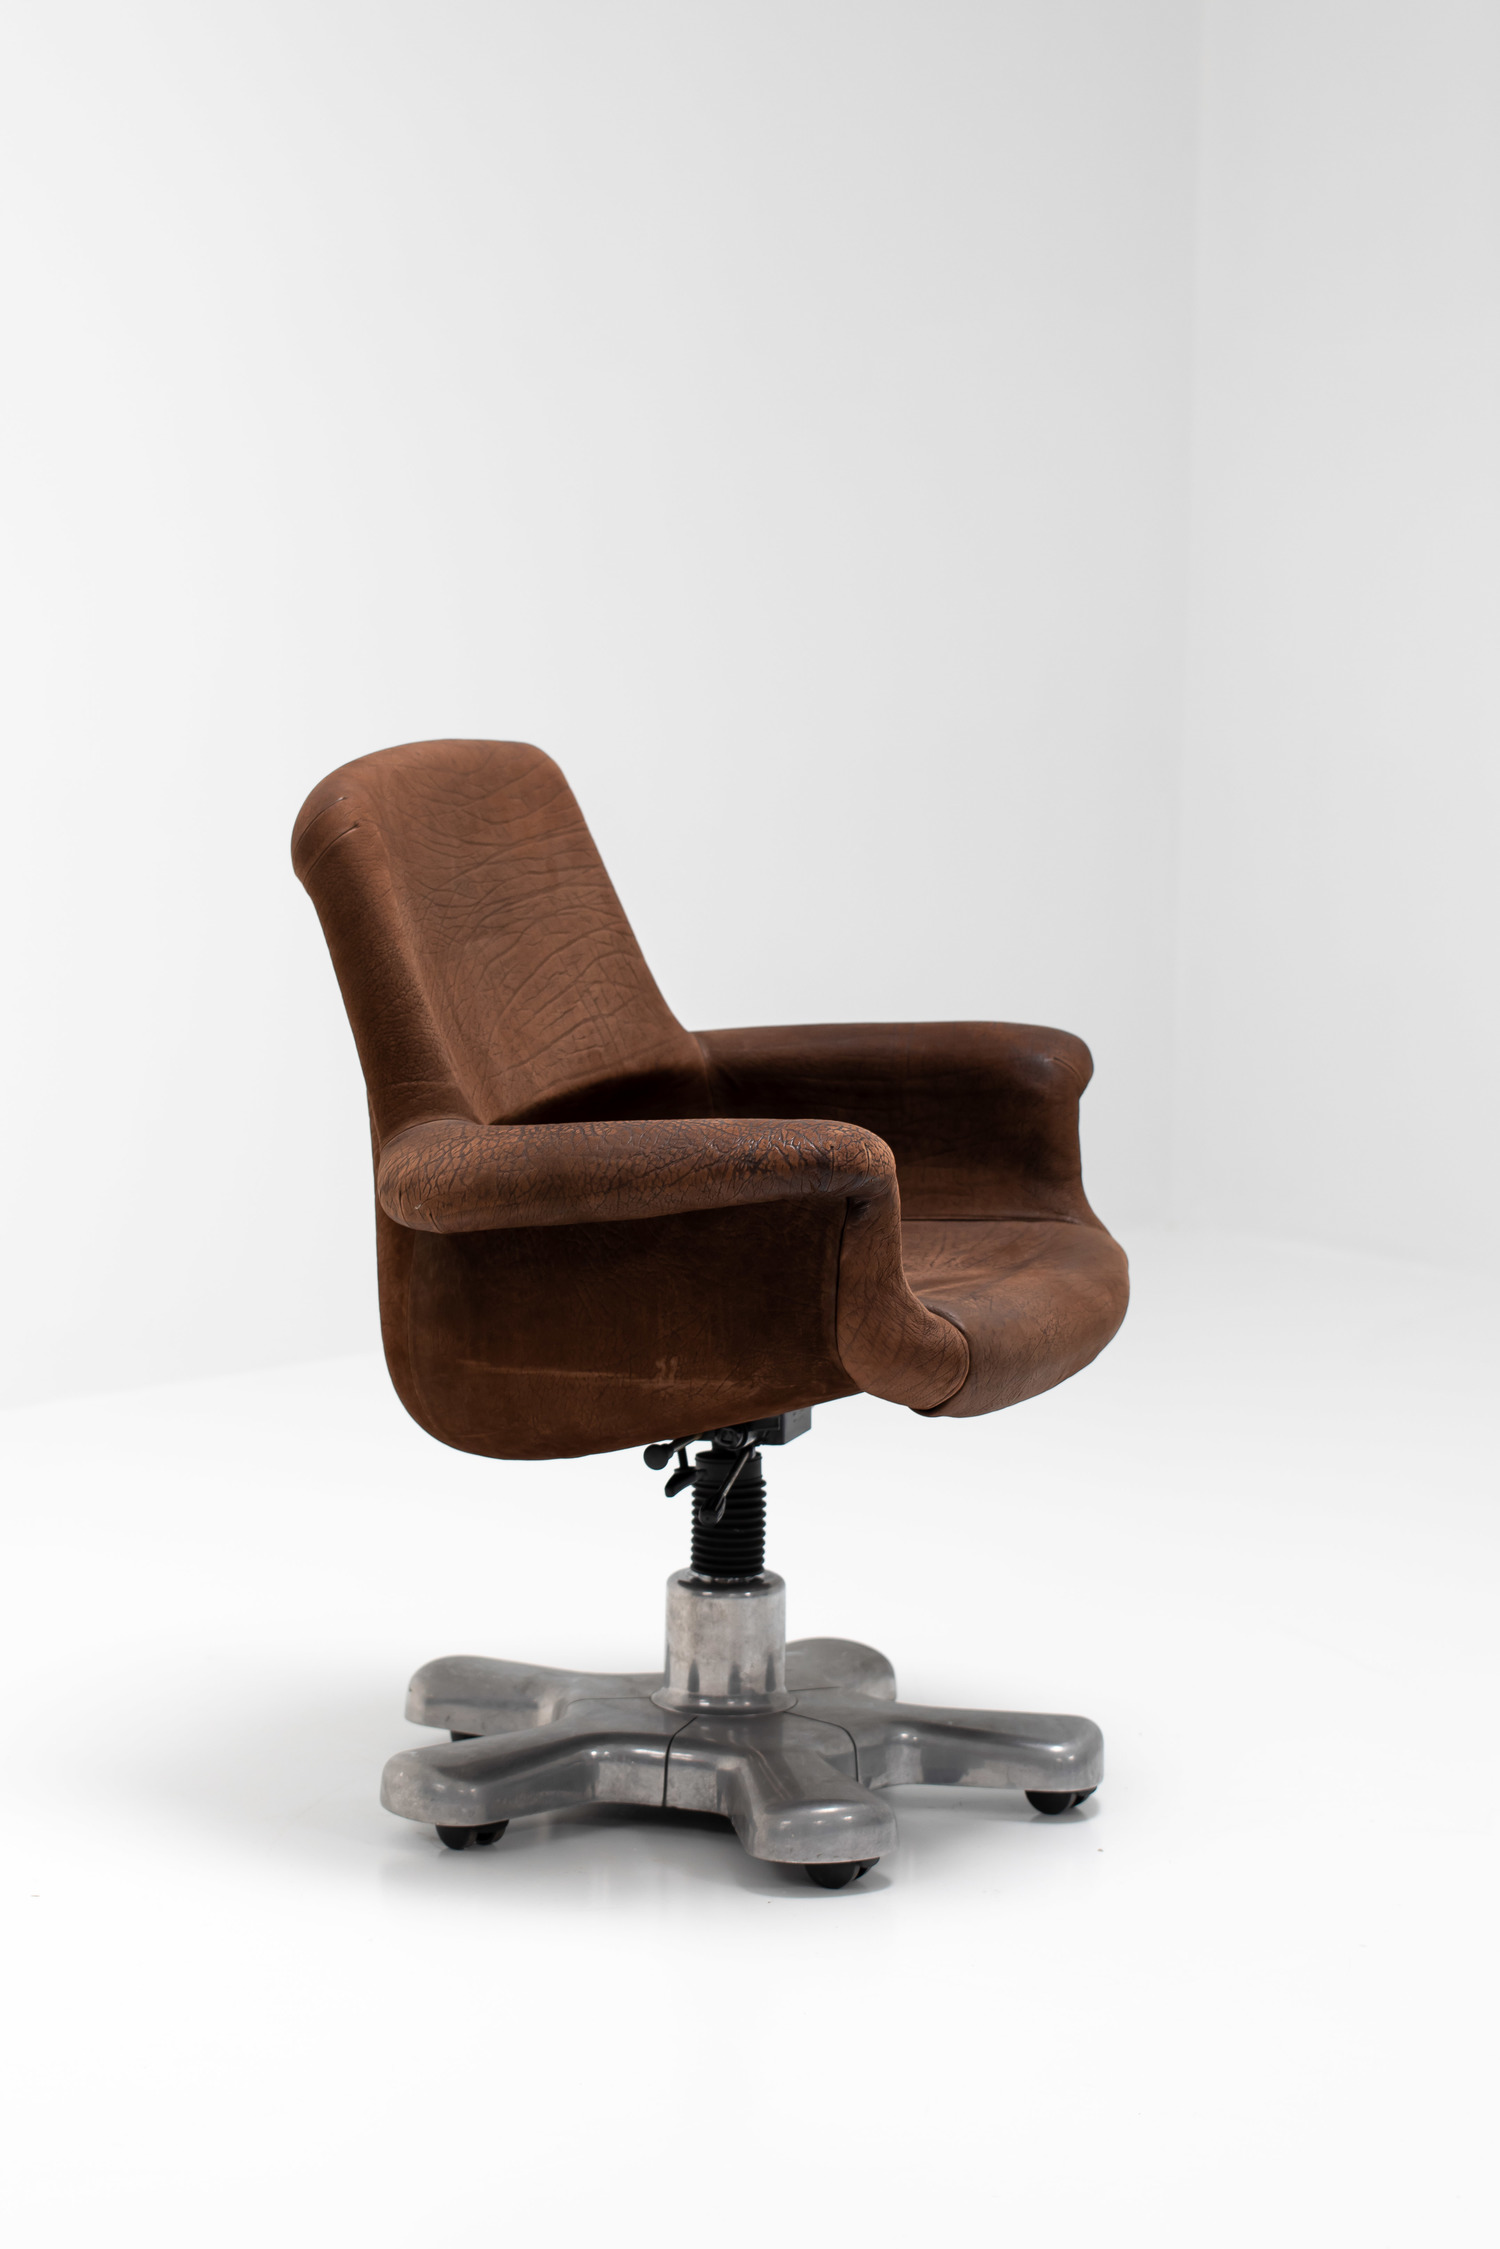 Angelo Mangiarotti office chair